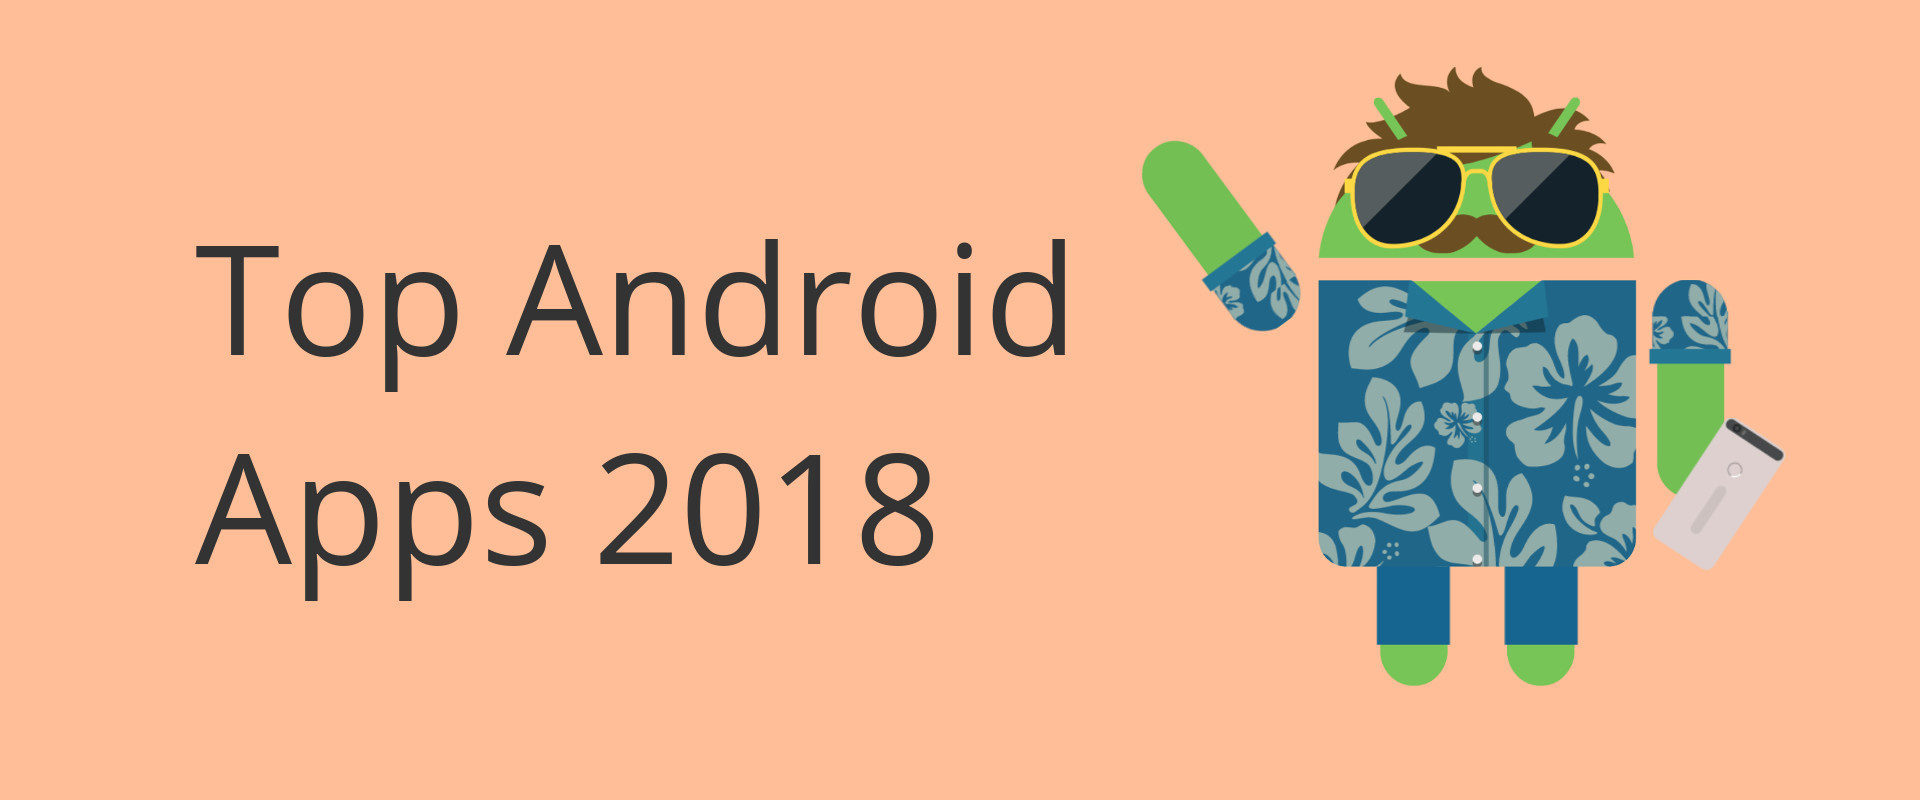 My top Android apps in 2018 | Jason Bayton